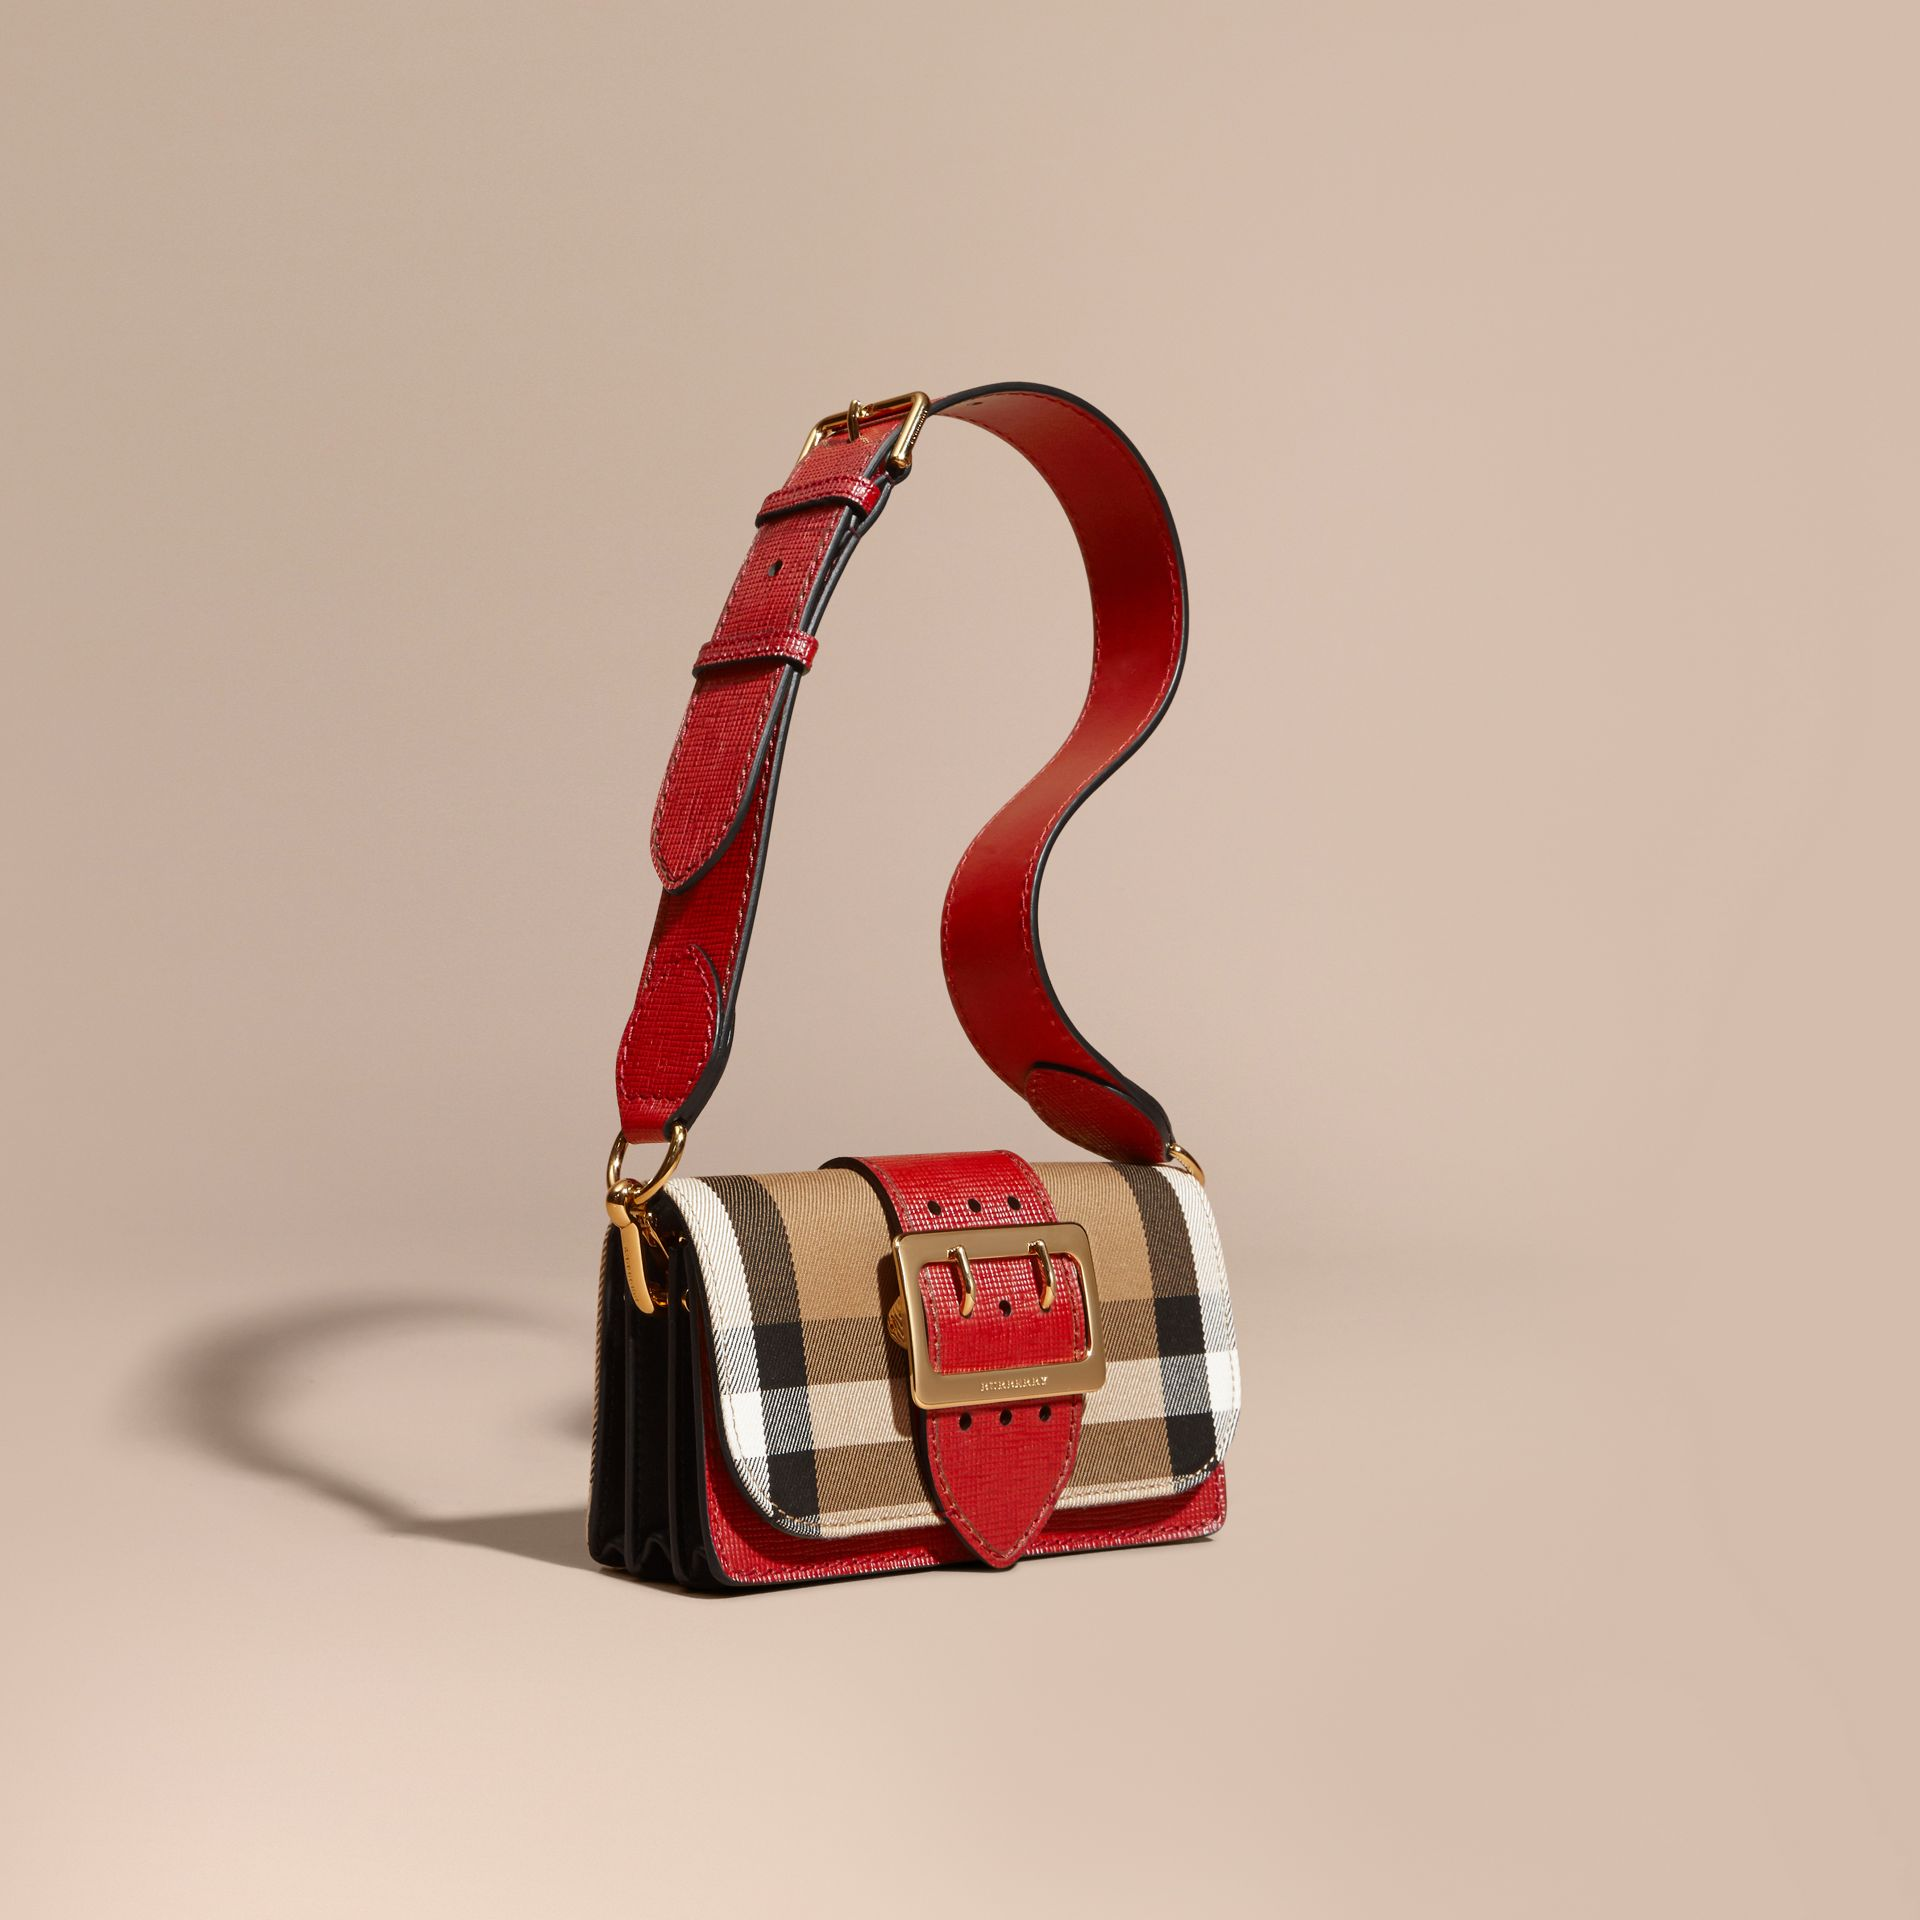 The Small Buckle Bag in House Check and Leather in Military Red/military Red - gallery image 1